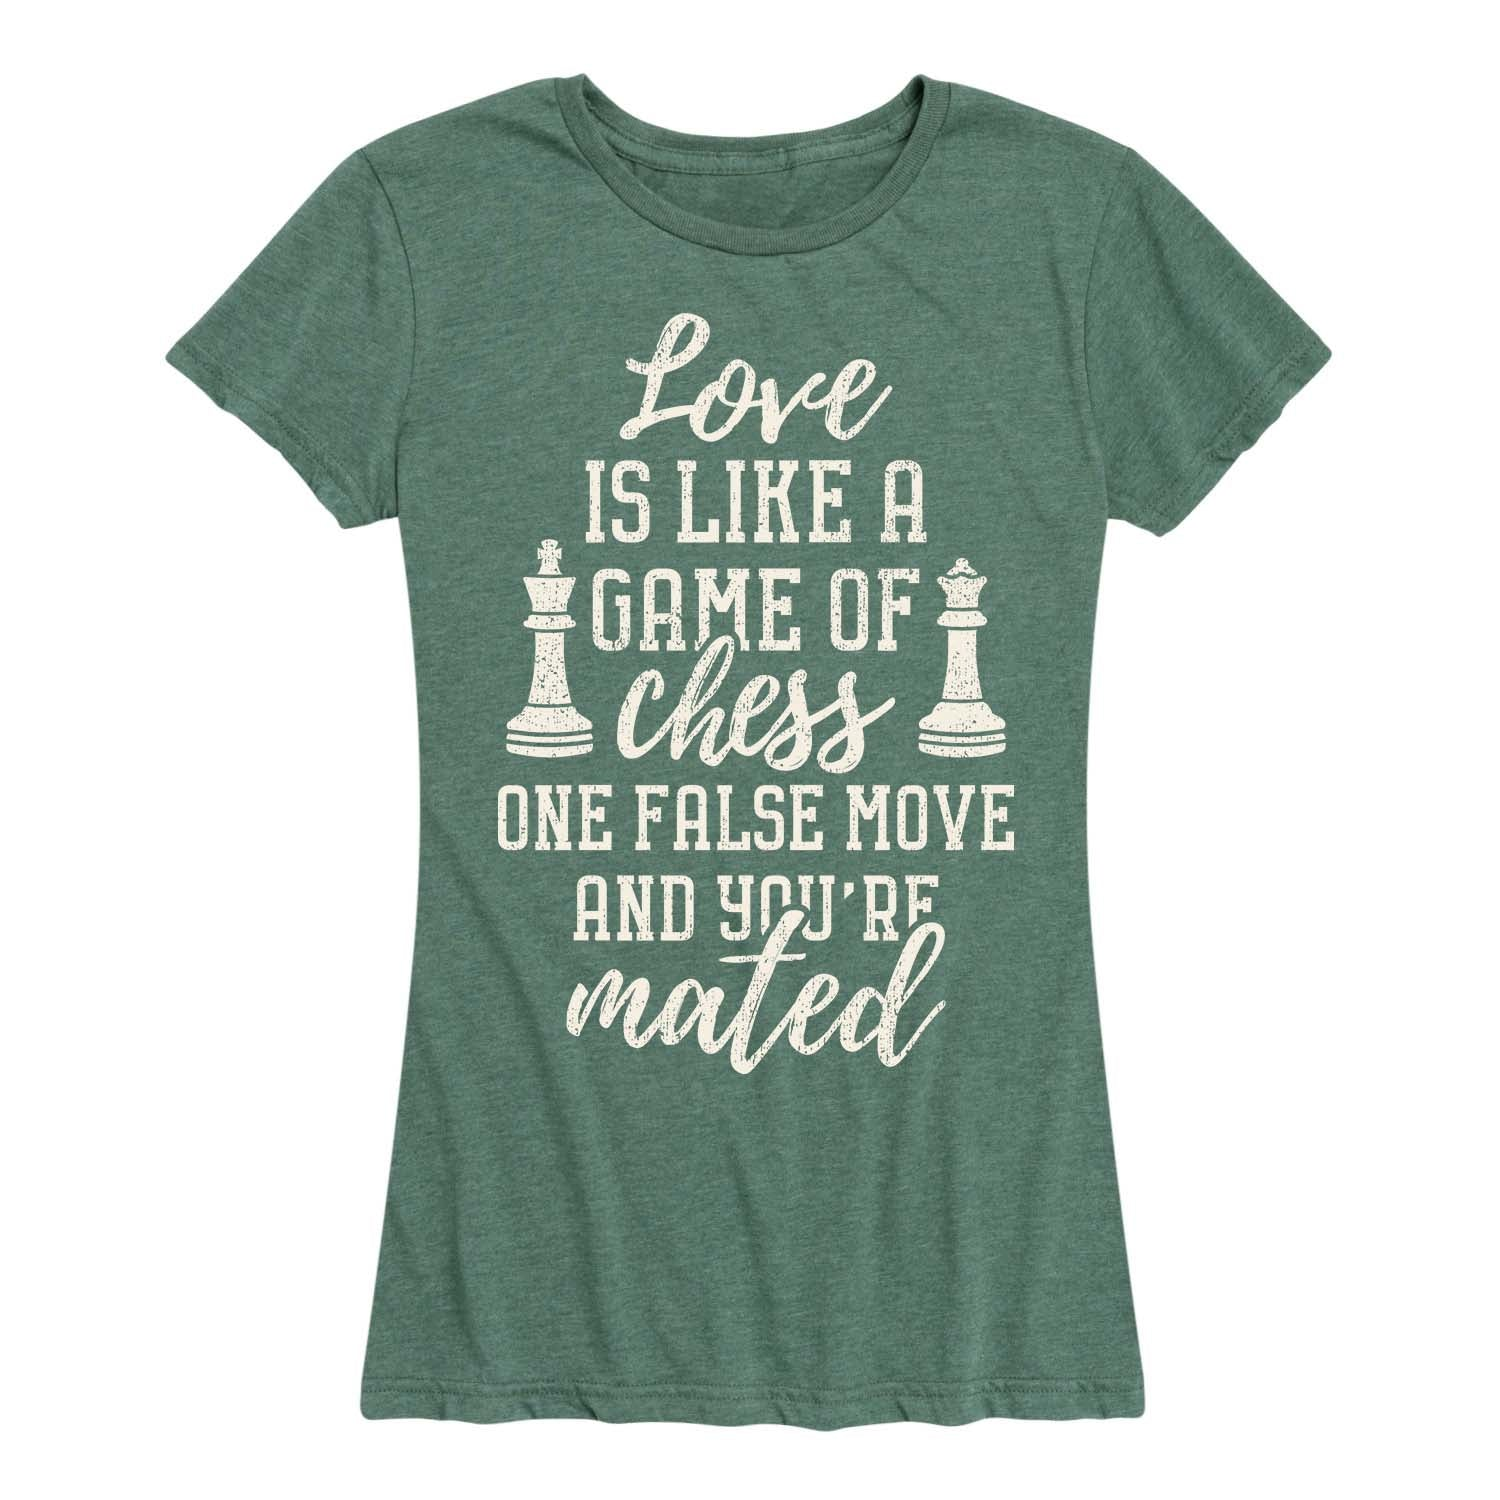 Love Is Like A Game Of Chess - Women's Short Sleeve T-Shirt